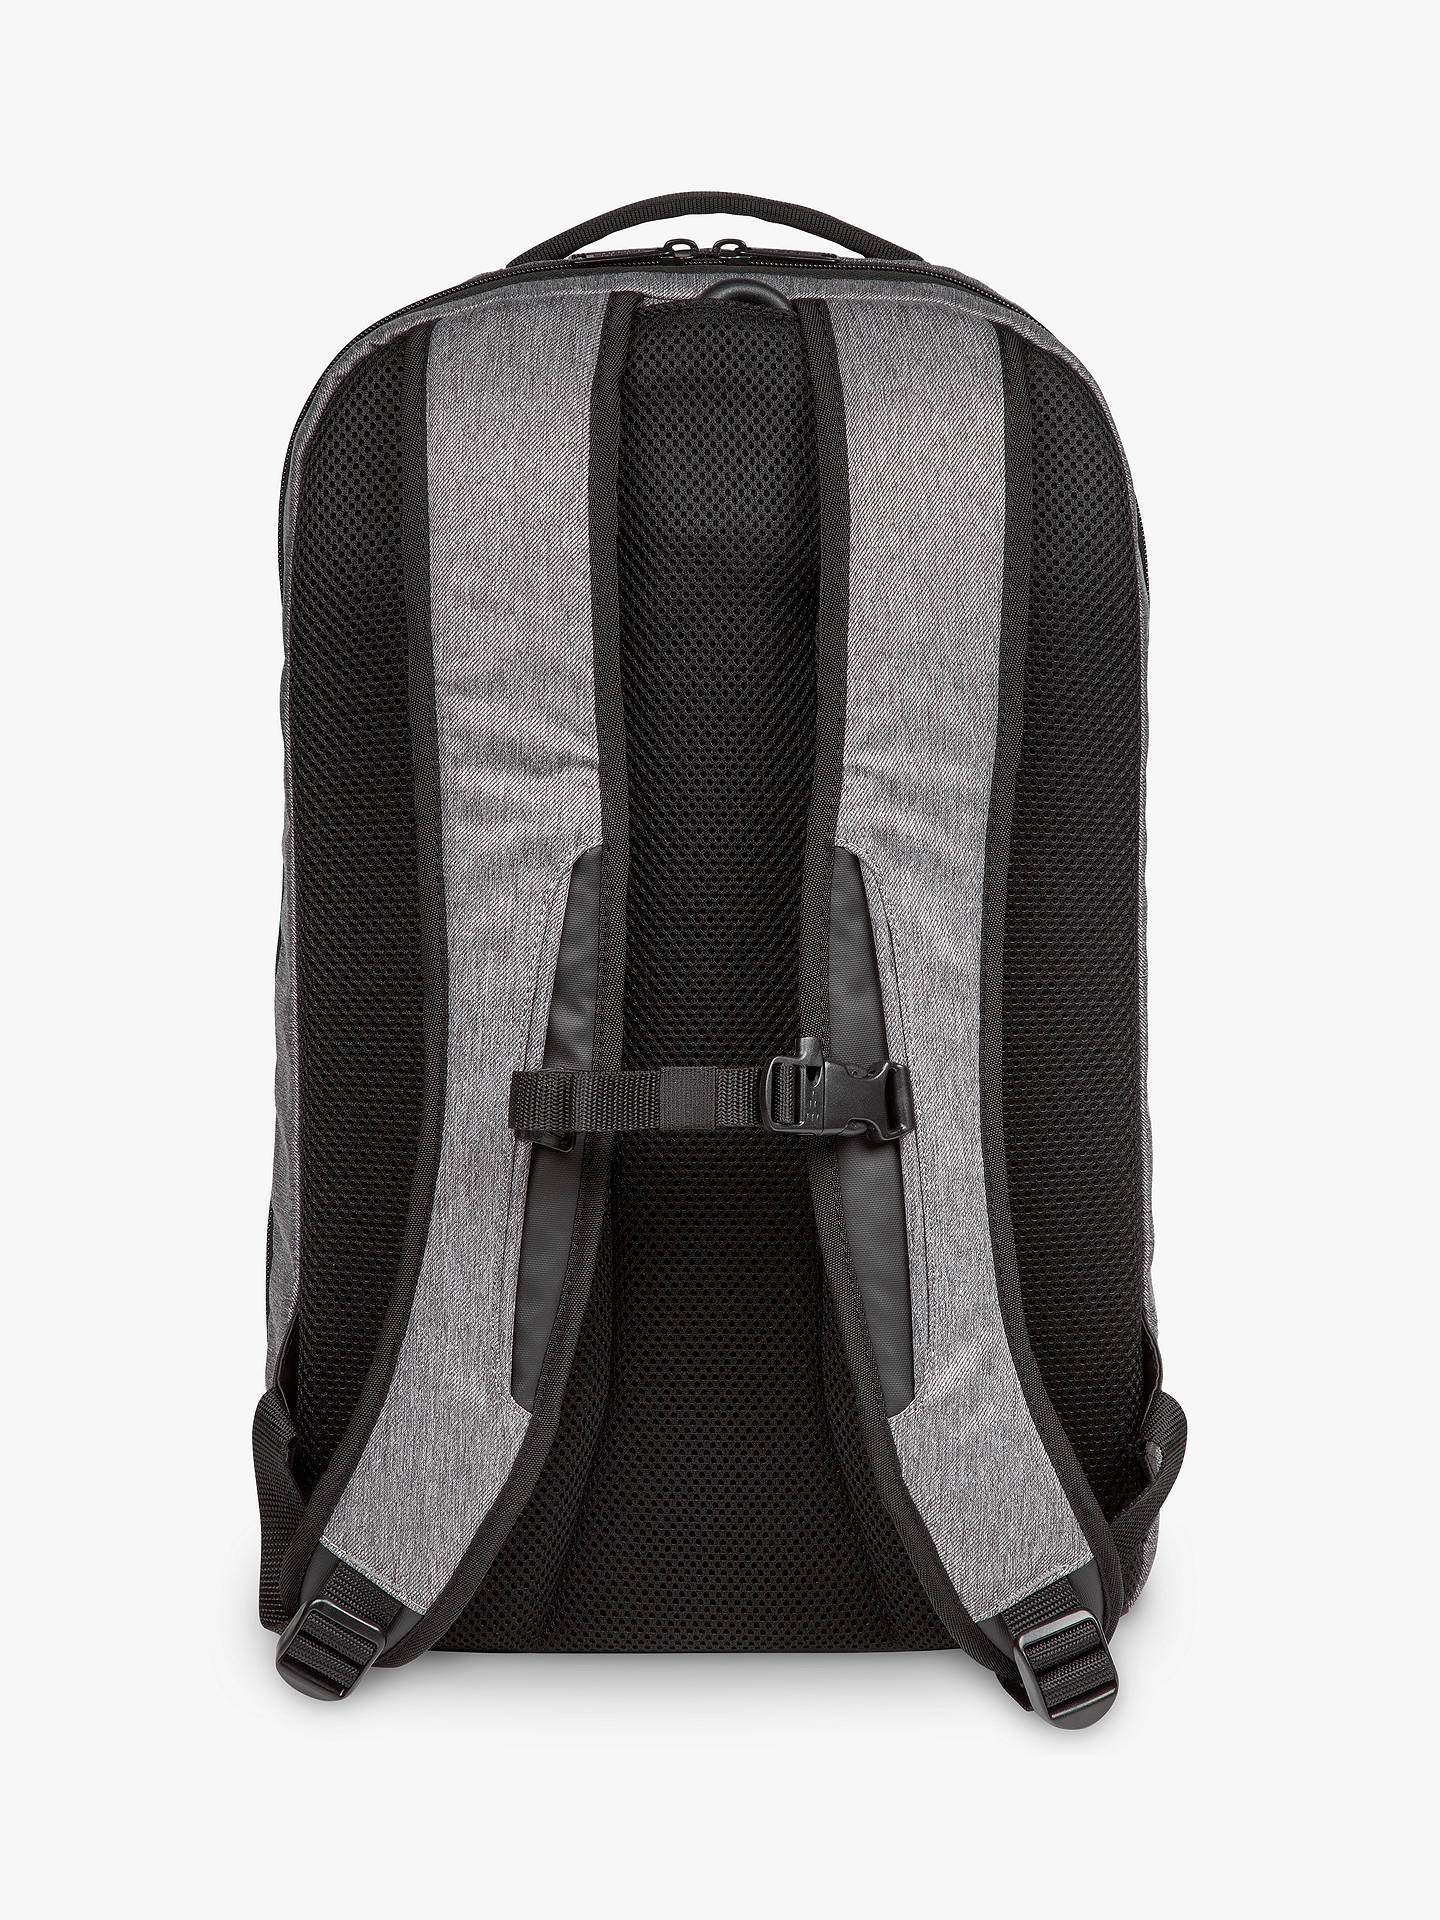 "Buy Targus Work + Play Fitness Backpack for Laptops up to 15.6"", Black/Grey Online at johnlewis.com"